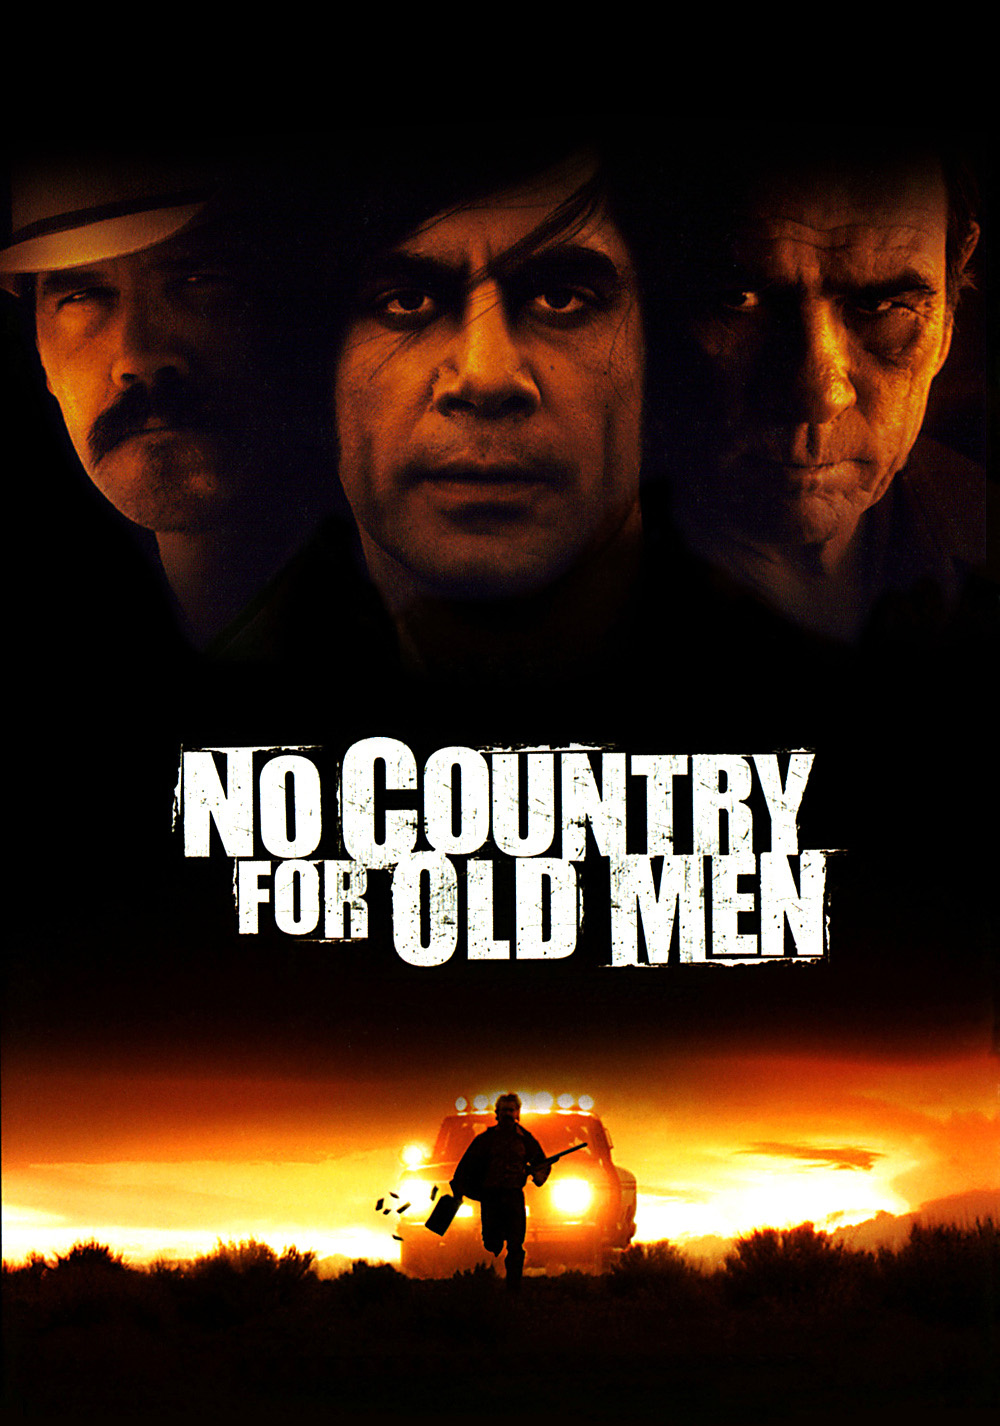 NO COUNTRY FOR OLD MEN (2007) MOVIE TAMIL DUBBED HD